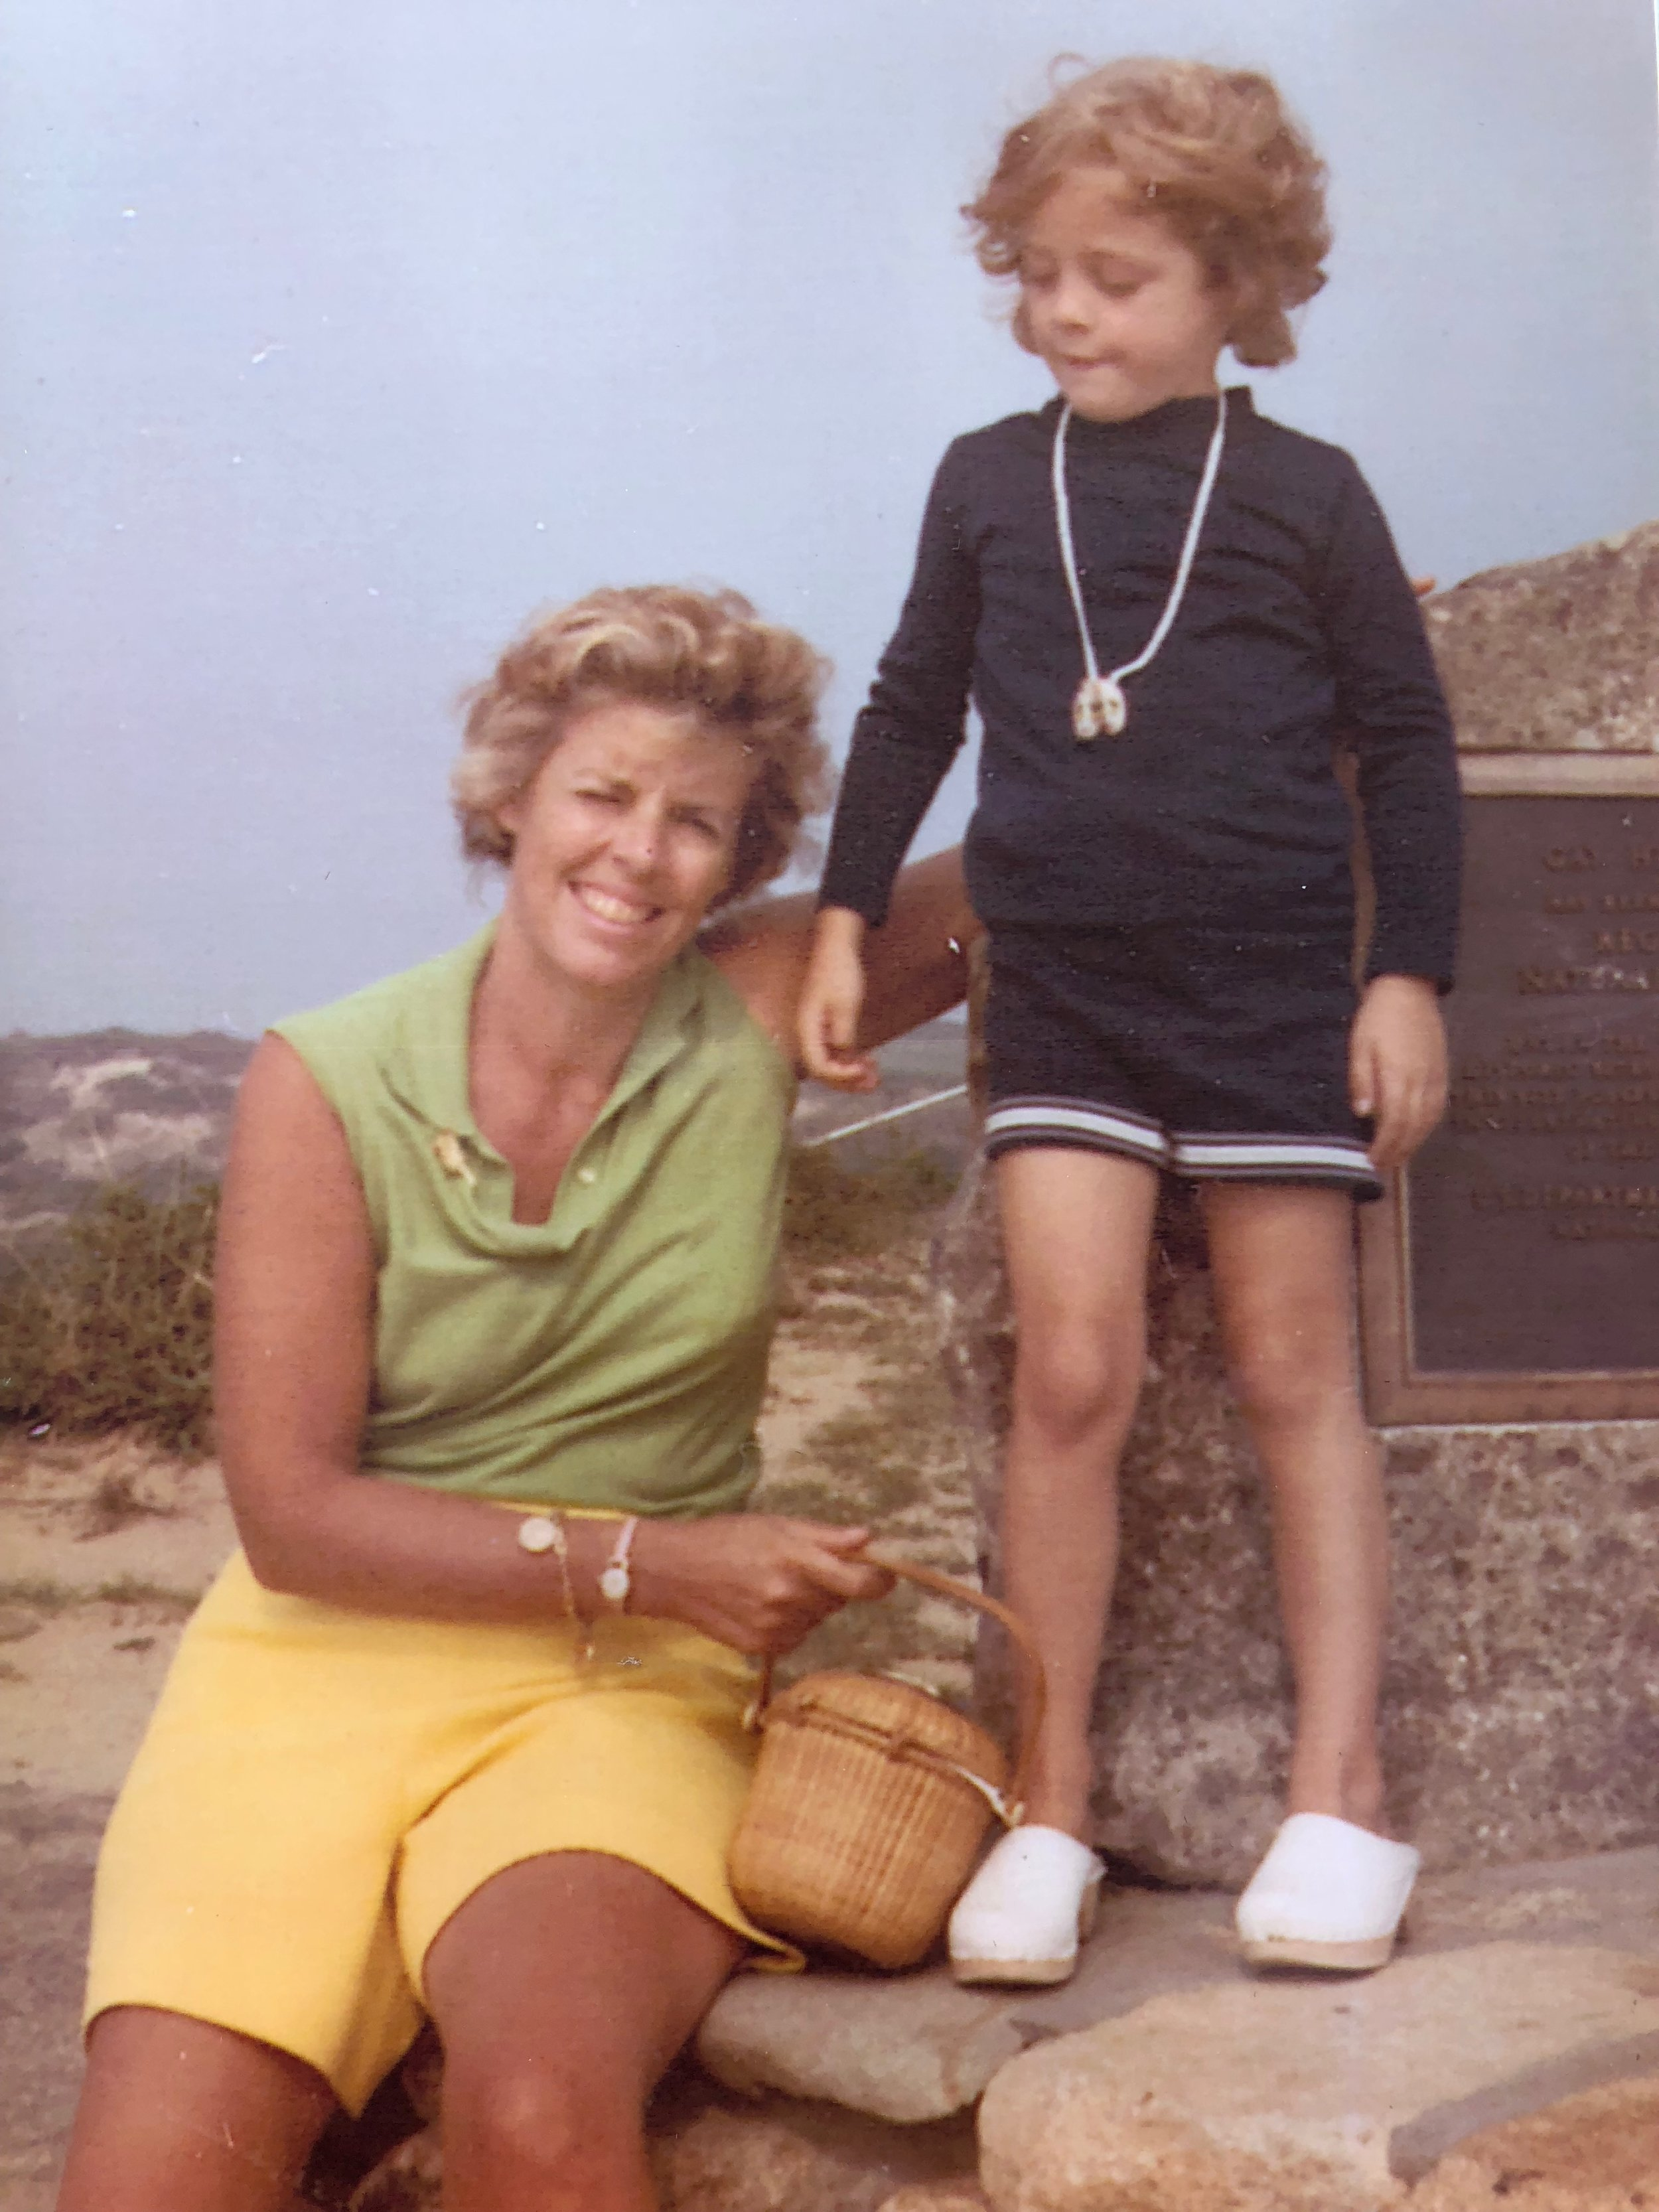 My mother and me in Martha's Vineyard @ 1969. Somewhere are teenagers who ditched us.